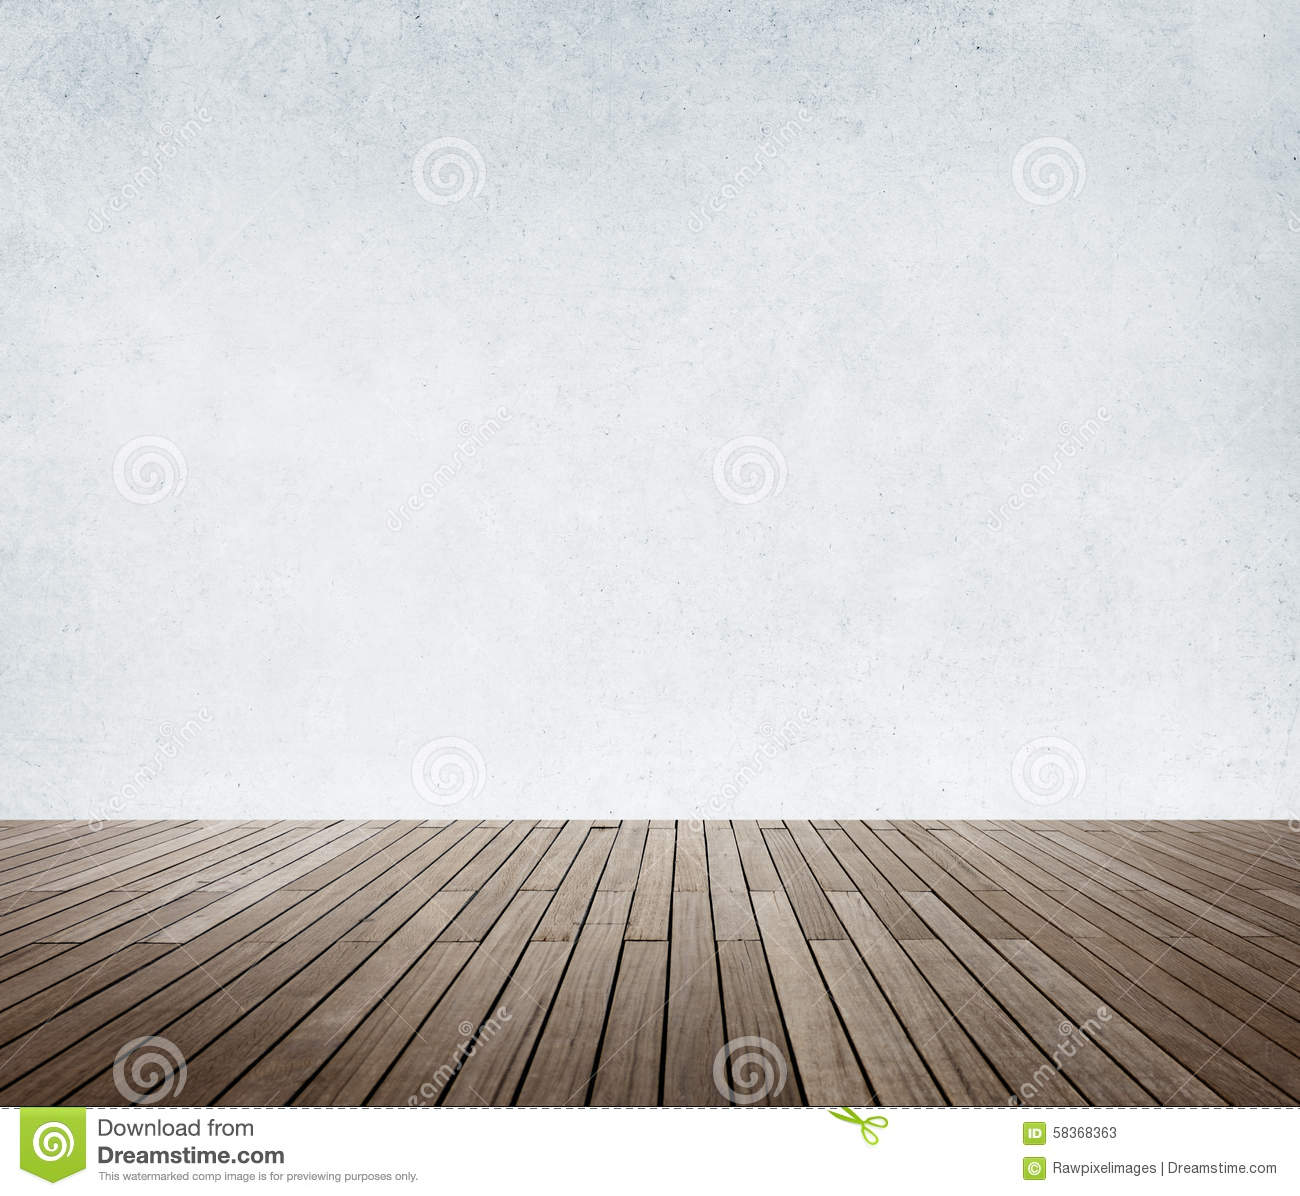 Grunge Background Wallpaper Wood Floor Concrete Concept Stock Photos - Wood Floor Background Or Wallpaper Royalty Free Stock Photography